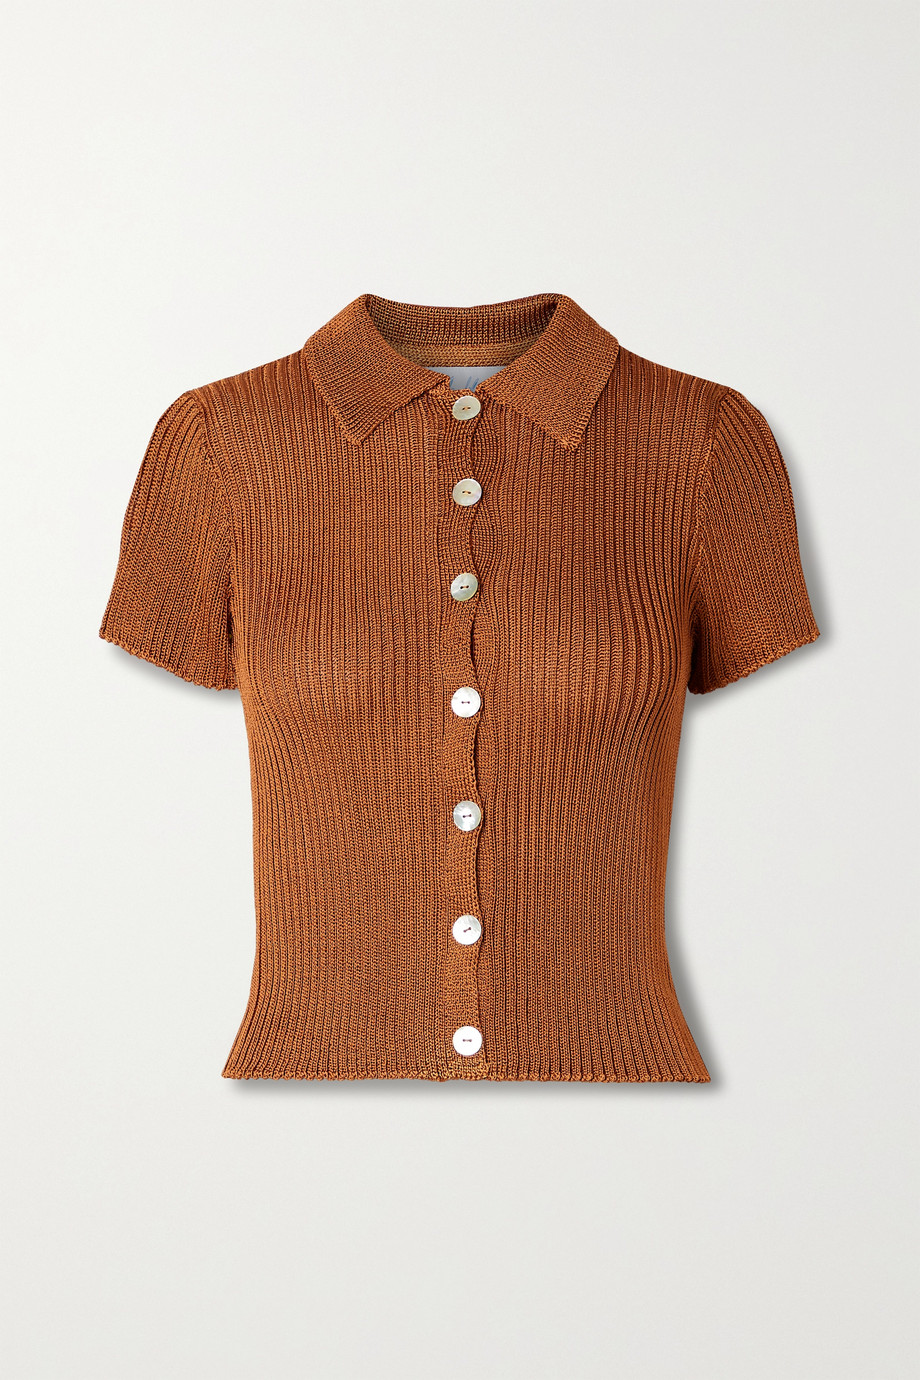 Calle Del Mar + NET SUSTAIN ribbed-knit shirt